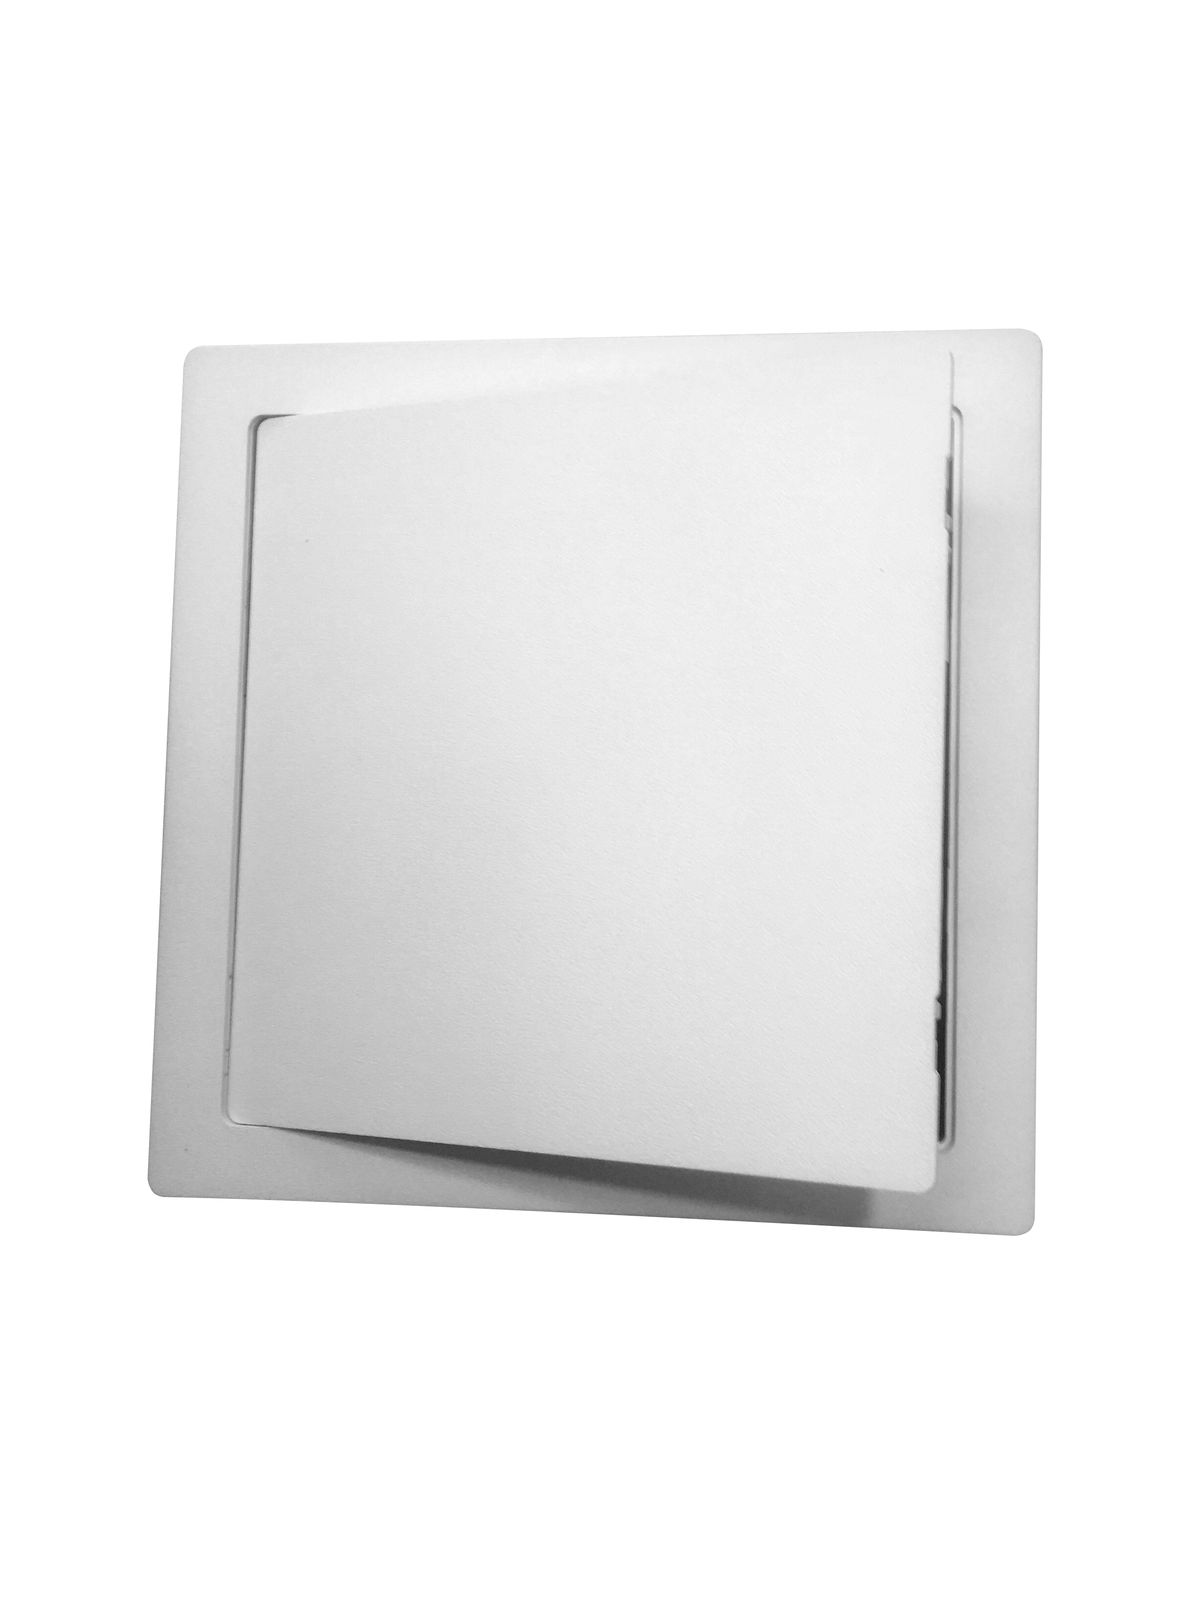 White Plastic Access Panel Inspection Hatch Revision Door 550mm x 550mm (22